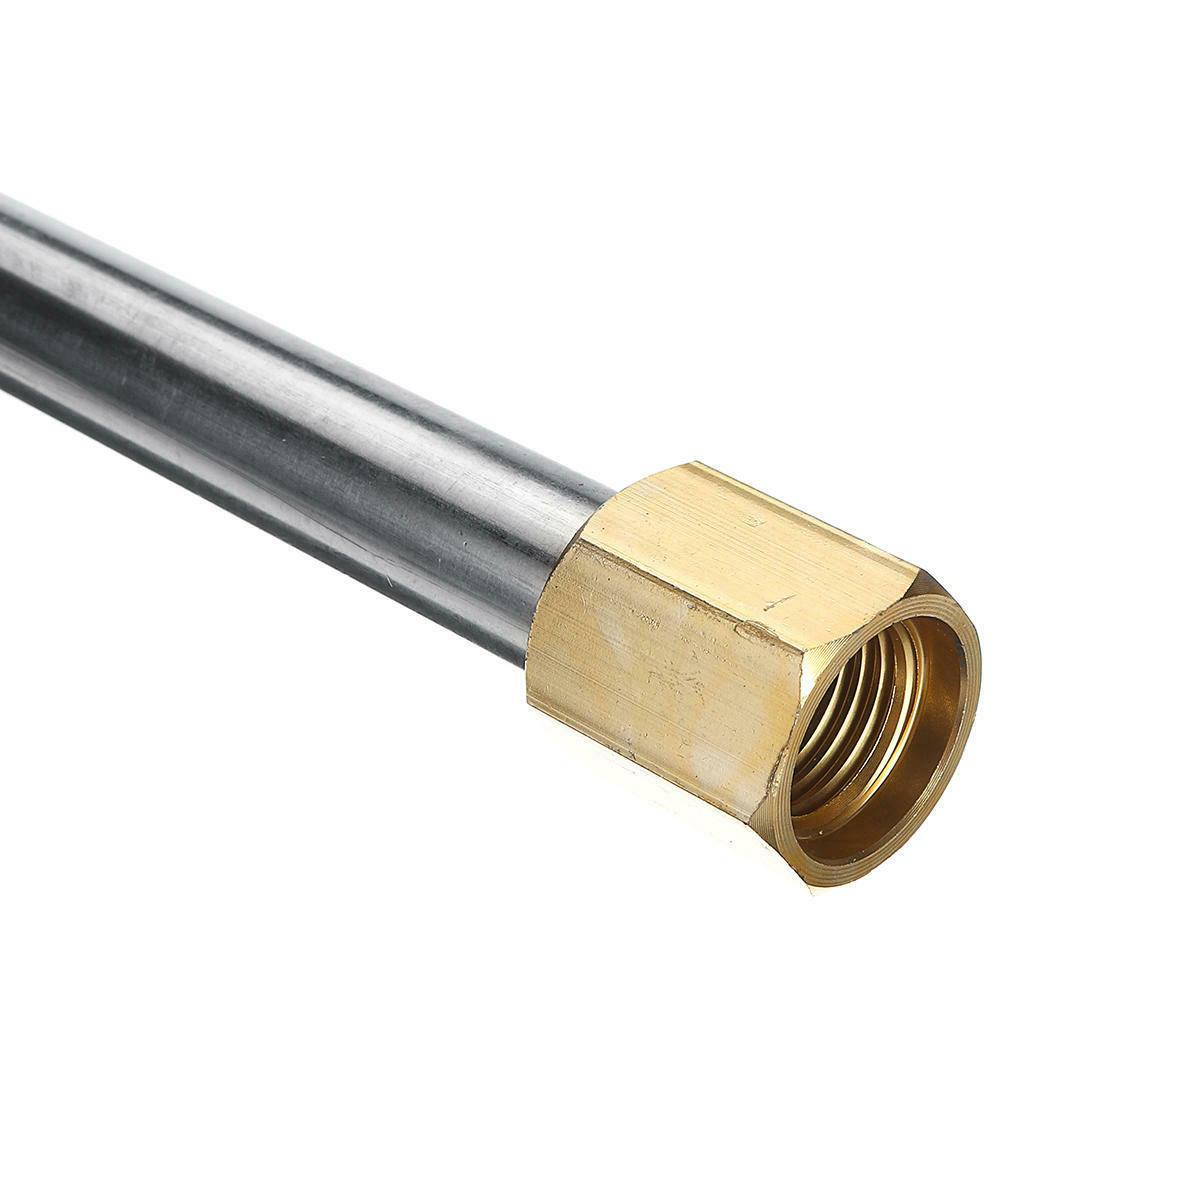 1/4 Pressure Washer Extension For Pressure Parts